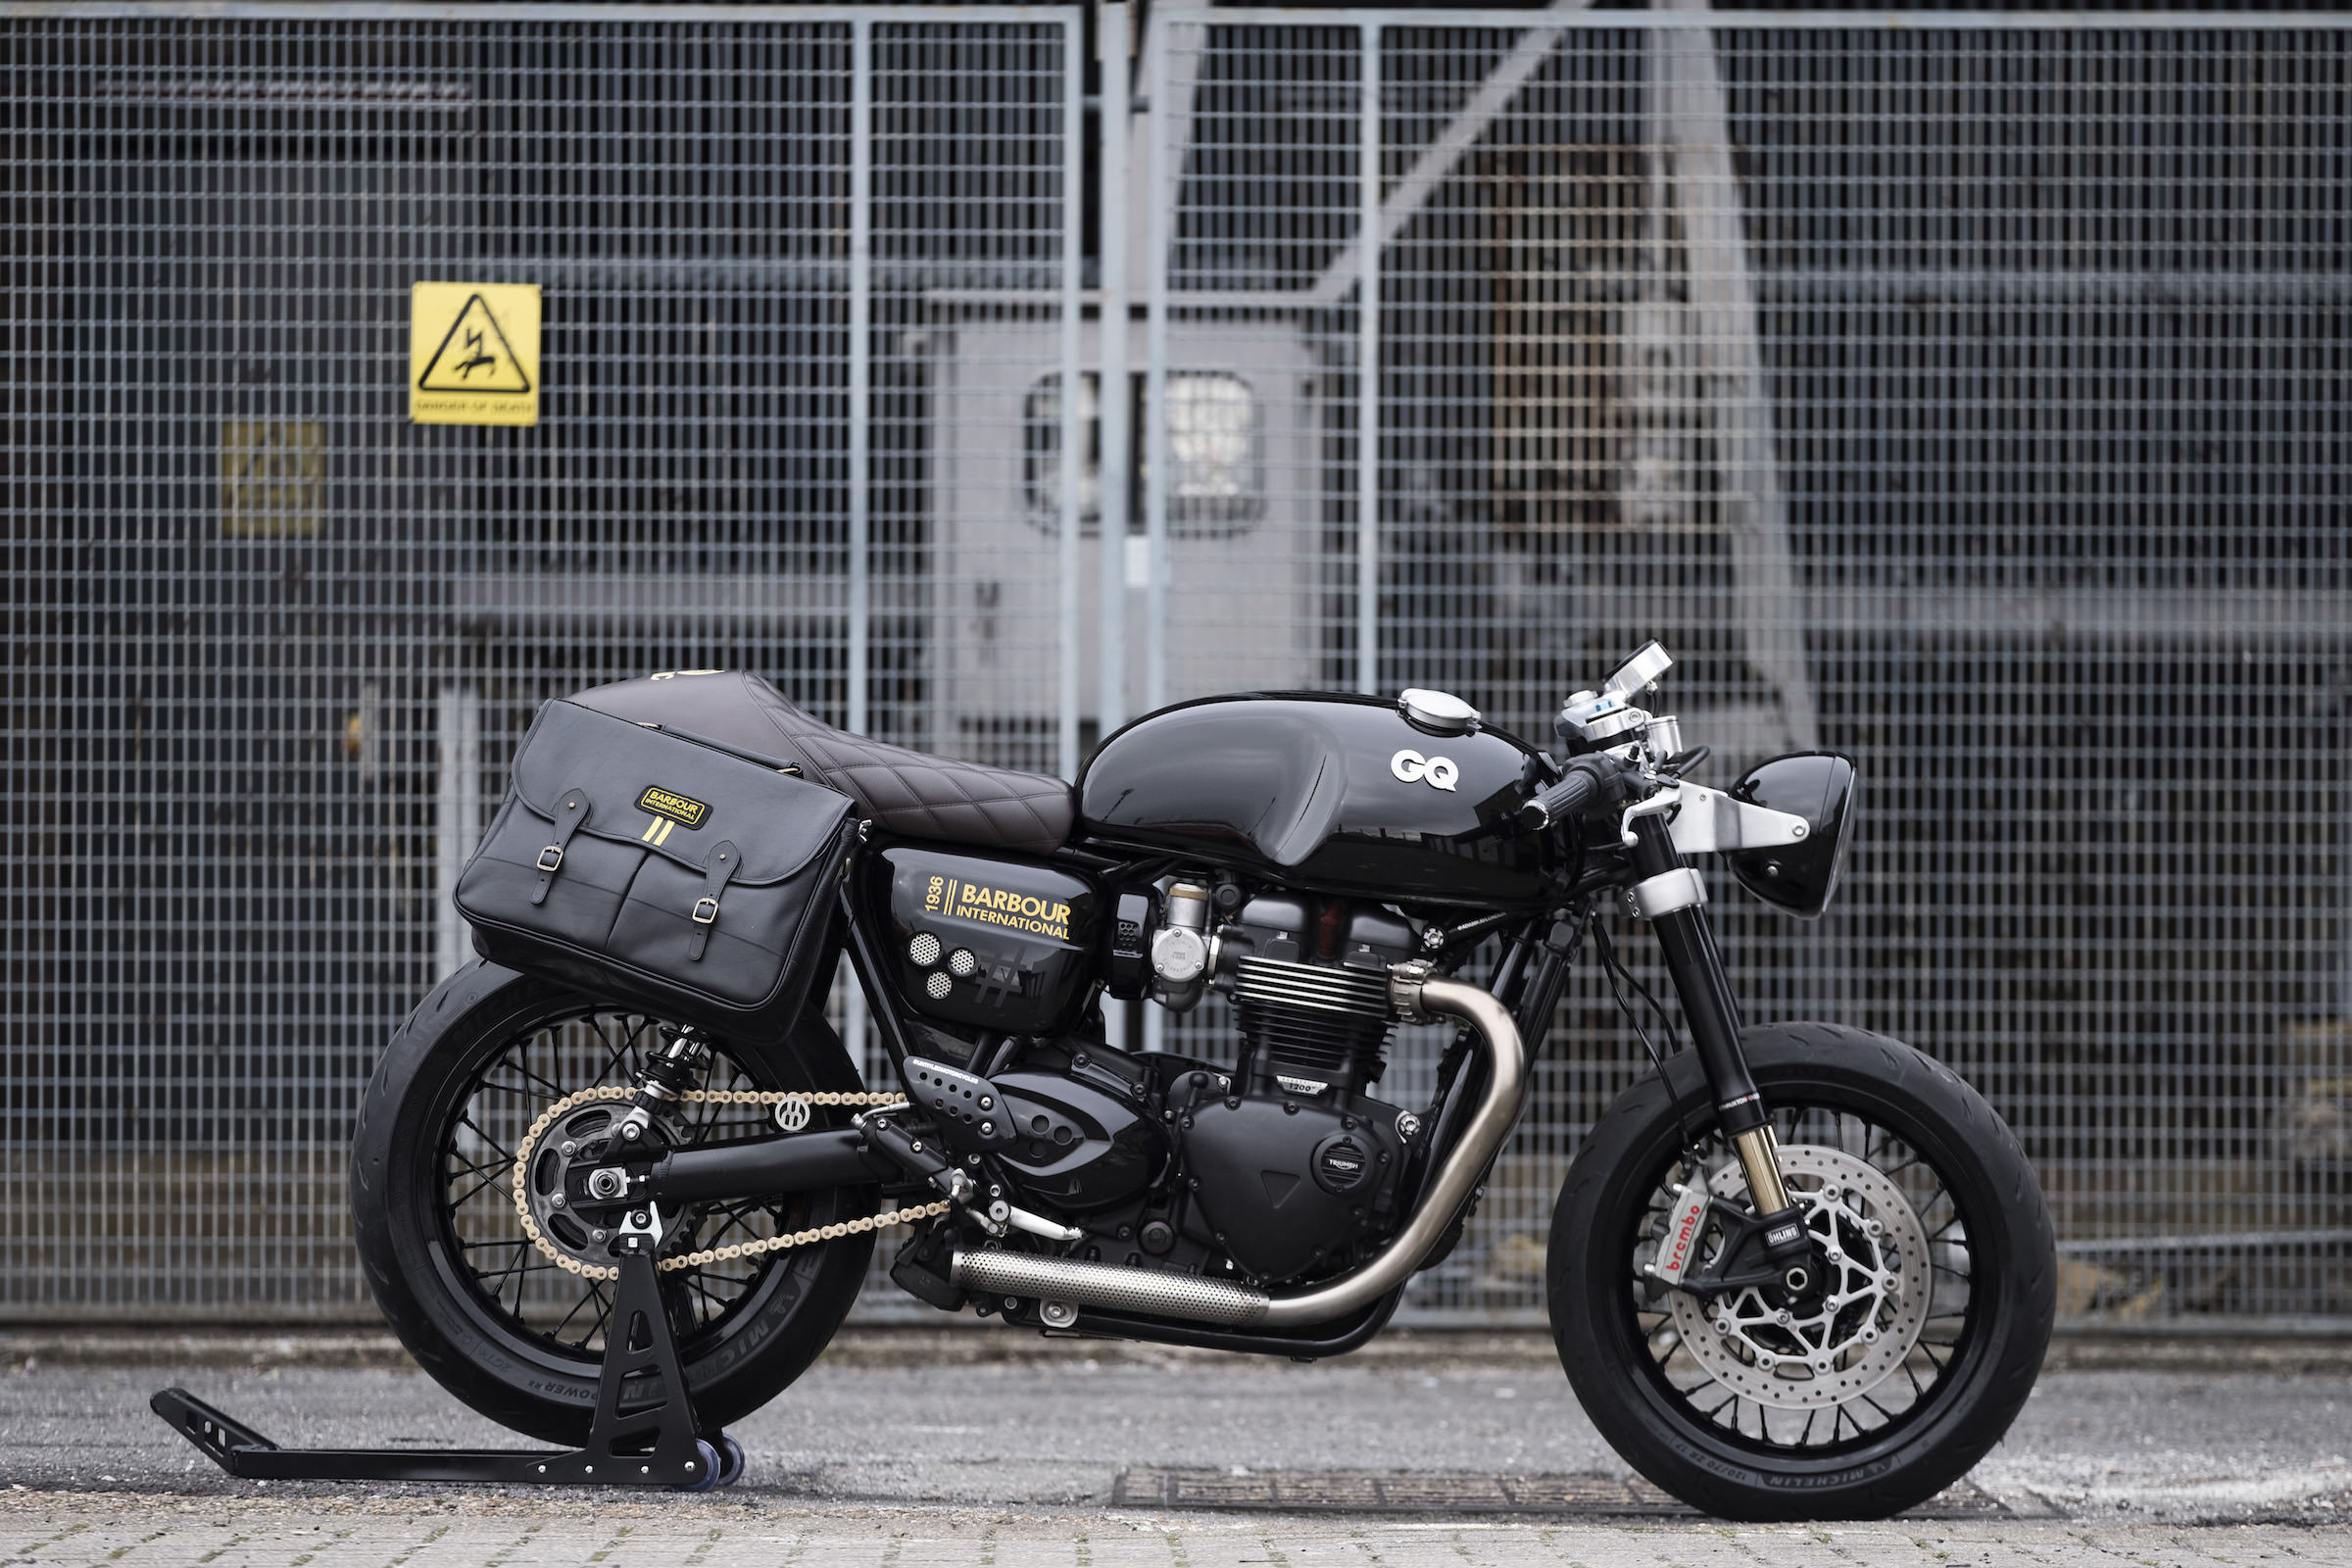 The Gq X Barbour X Untitled Motorcycles Triumph Thruxton